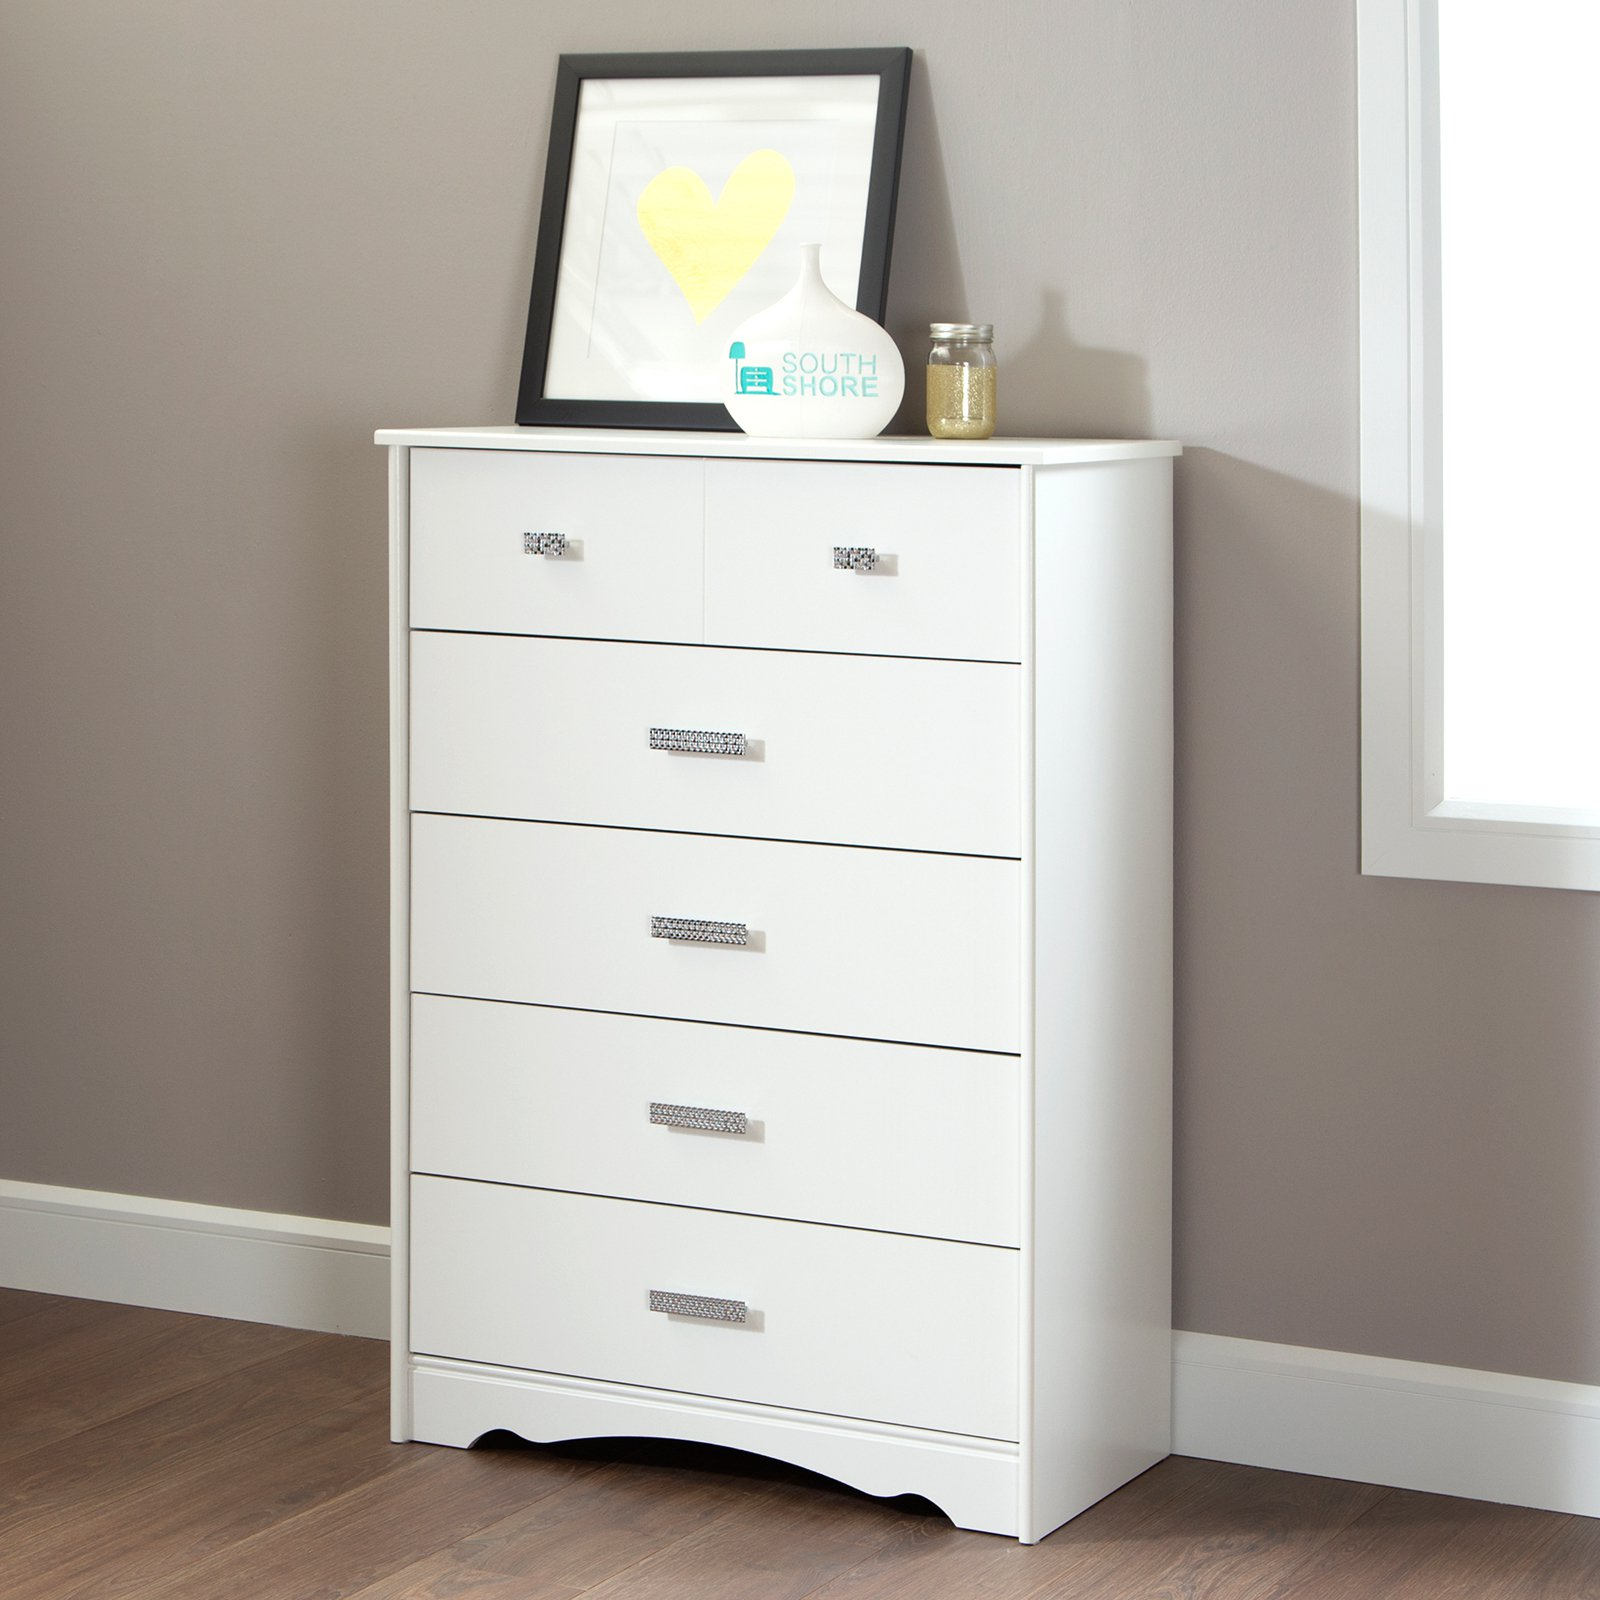 South Shore Tiara 5-Drawer Chest, White by South Shore